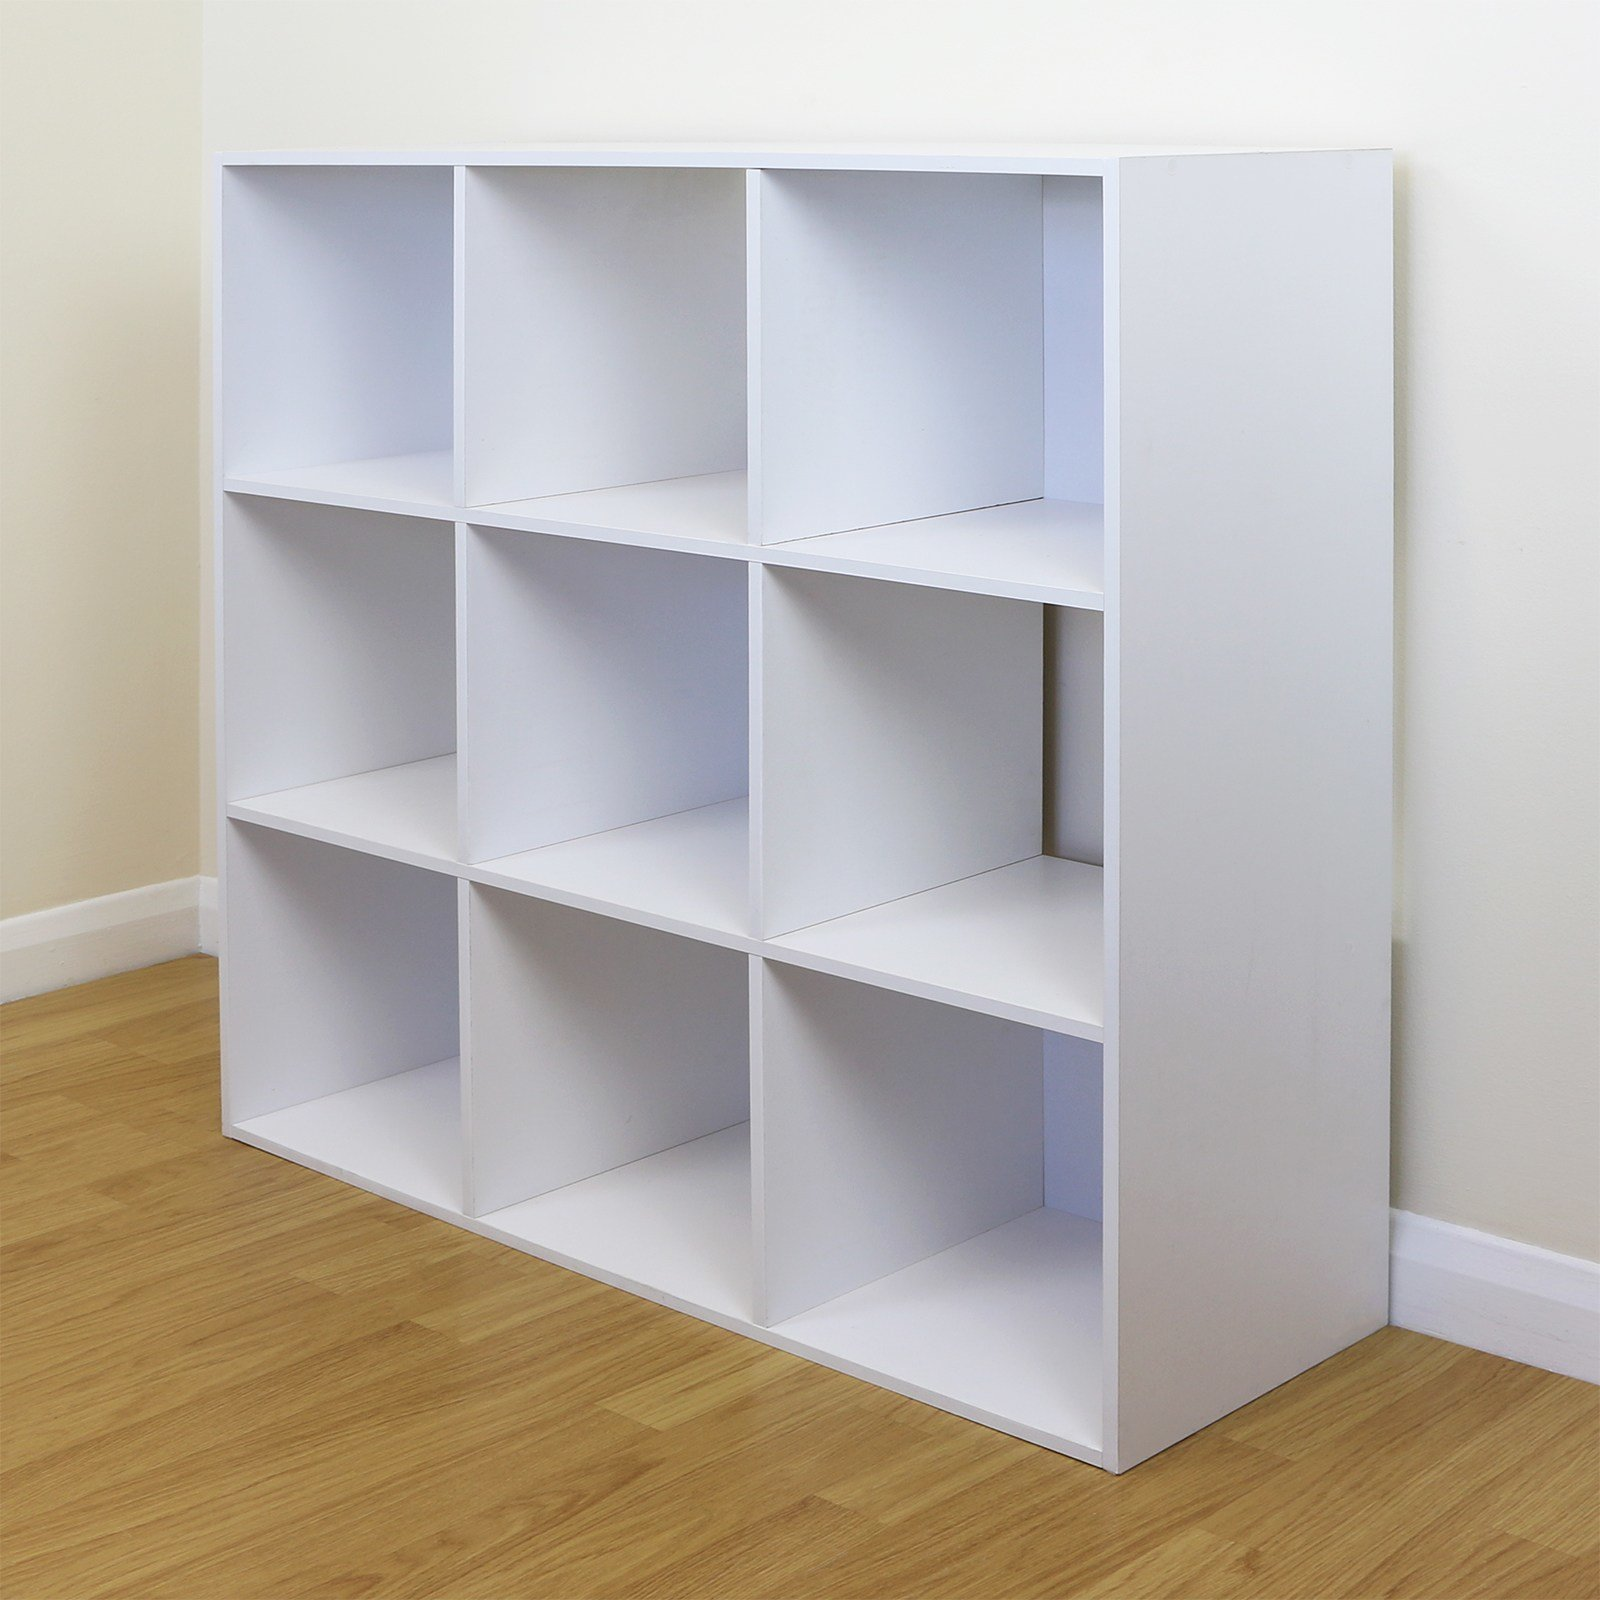 Best 9 Cube Kids White Toy Games Storage Unit Girls Boys Childs Bedroom Shelves Box 5051990727410 Ebay With Pictures